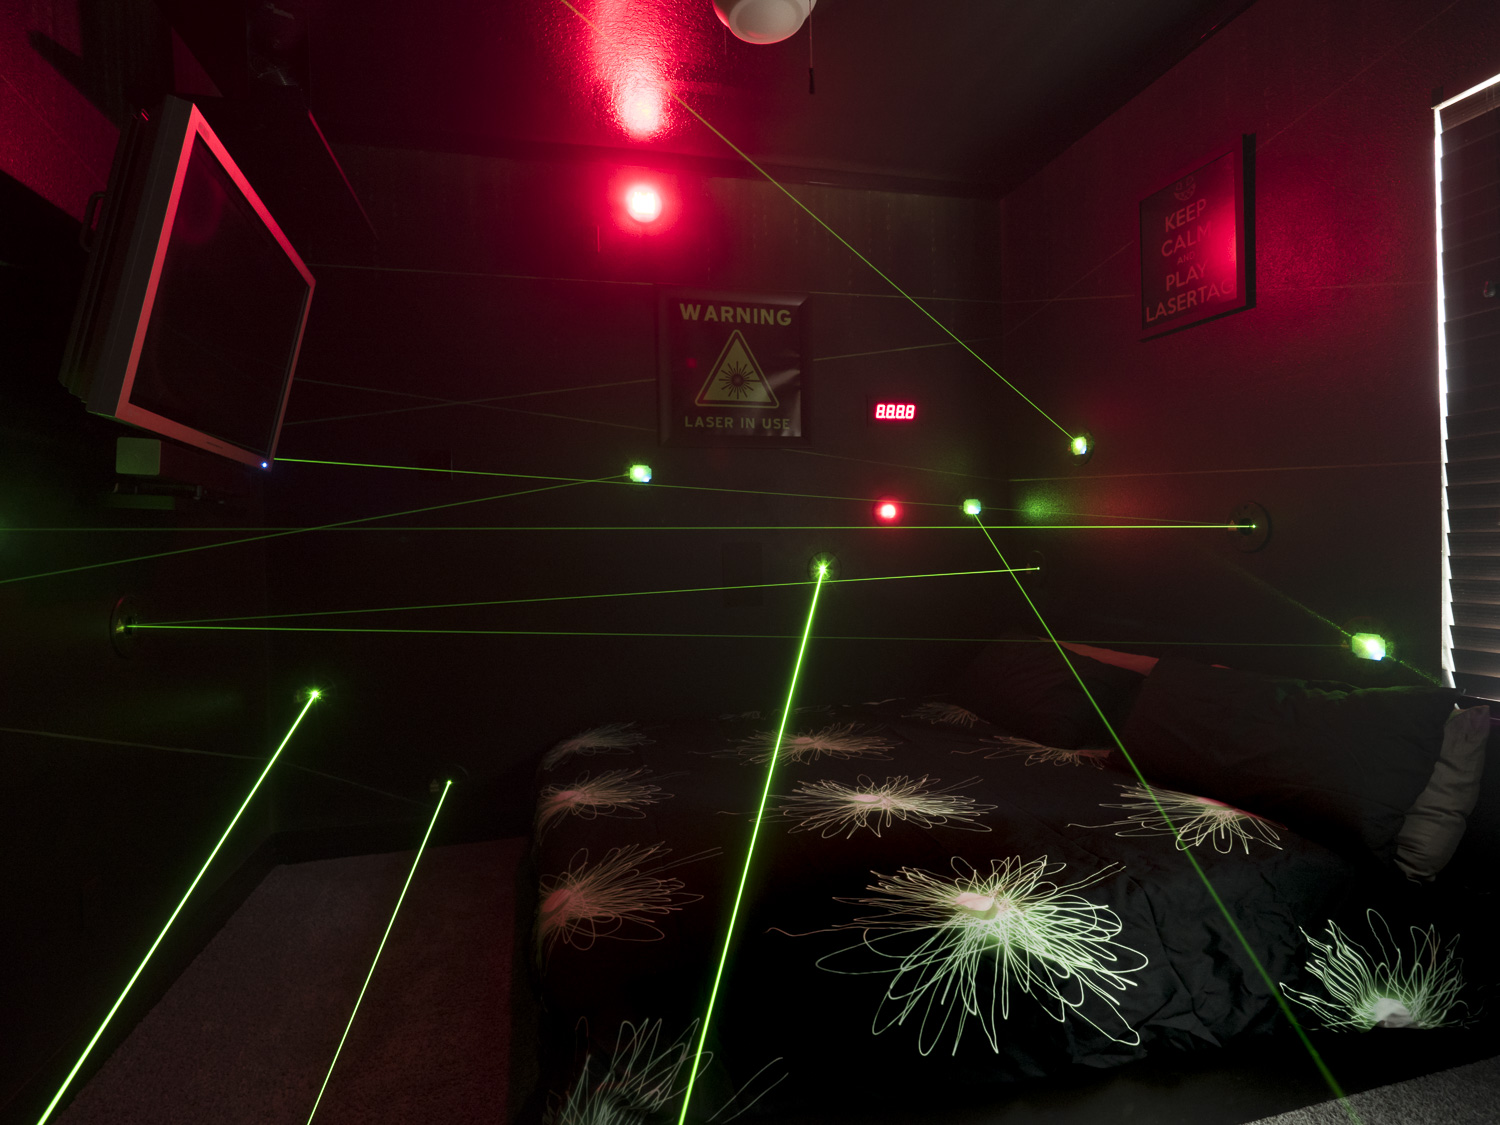 Southern Living Great Escape Lakeside Laser Maze